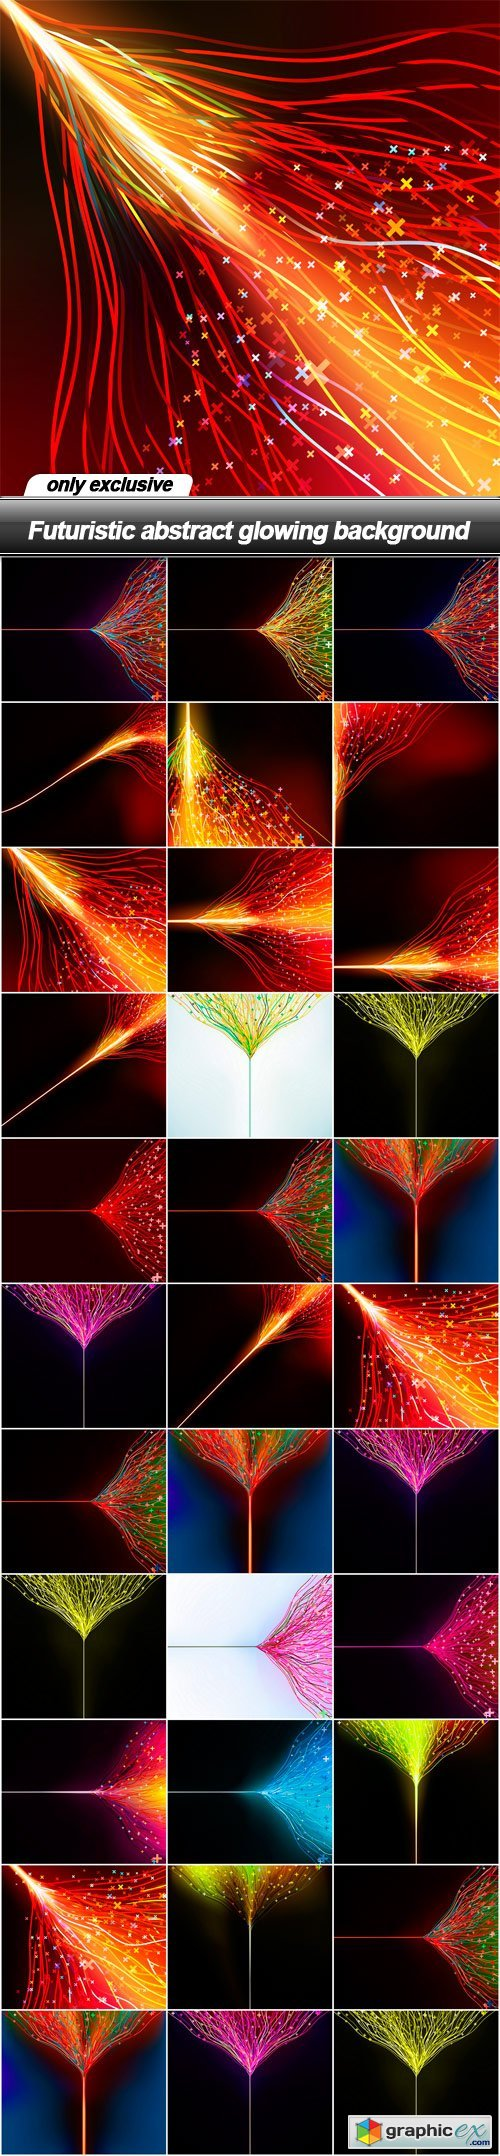 Futuristic abstract glowing background - 33 EPS » Free Download